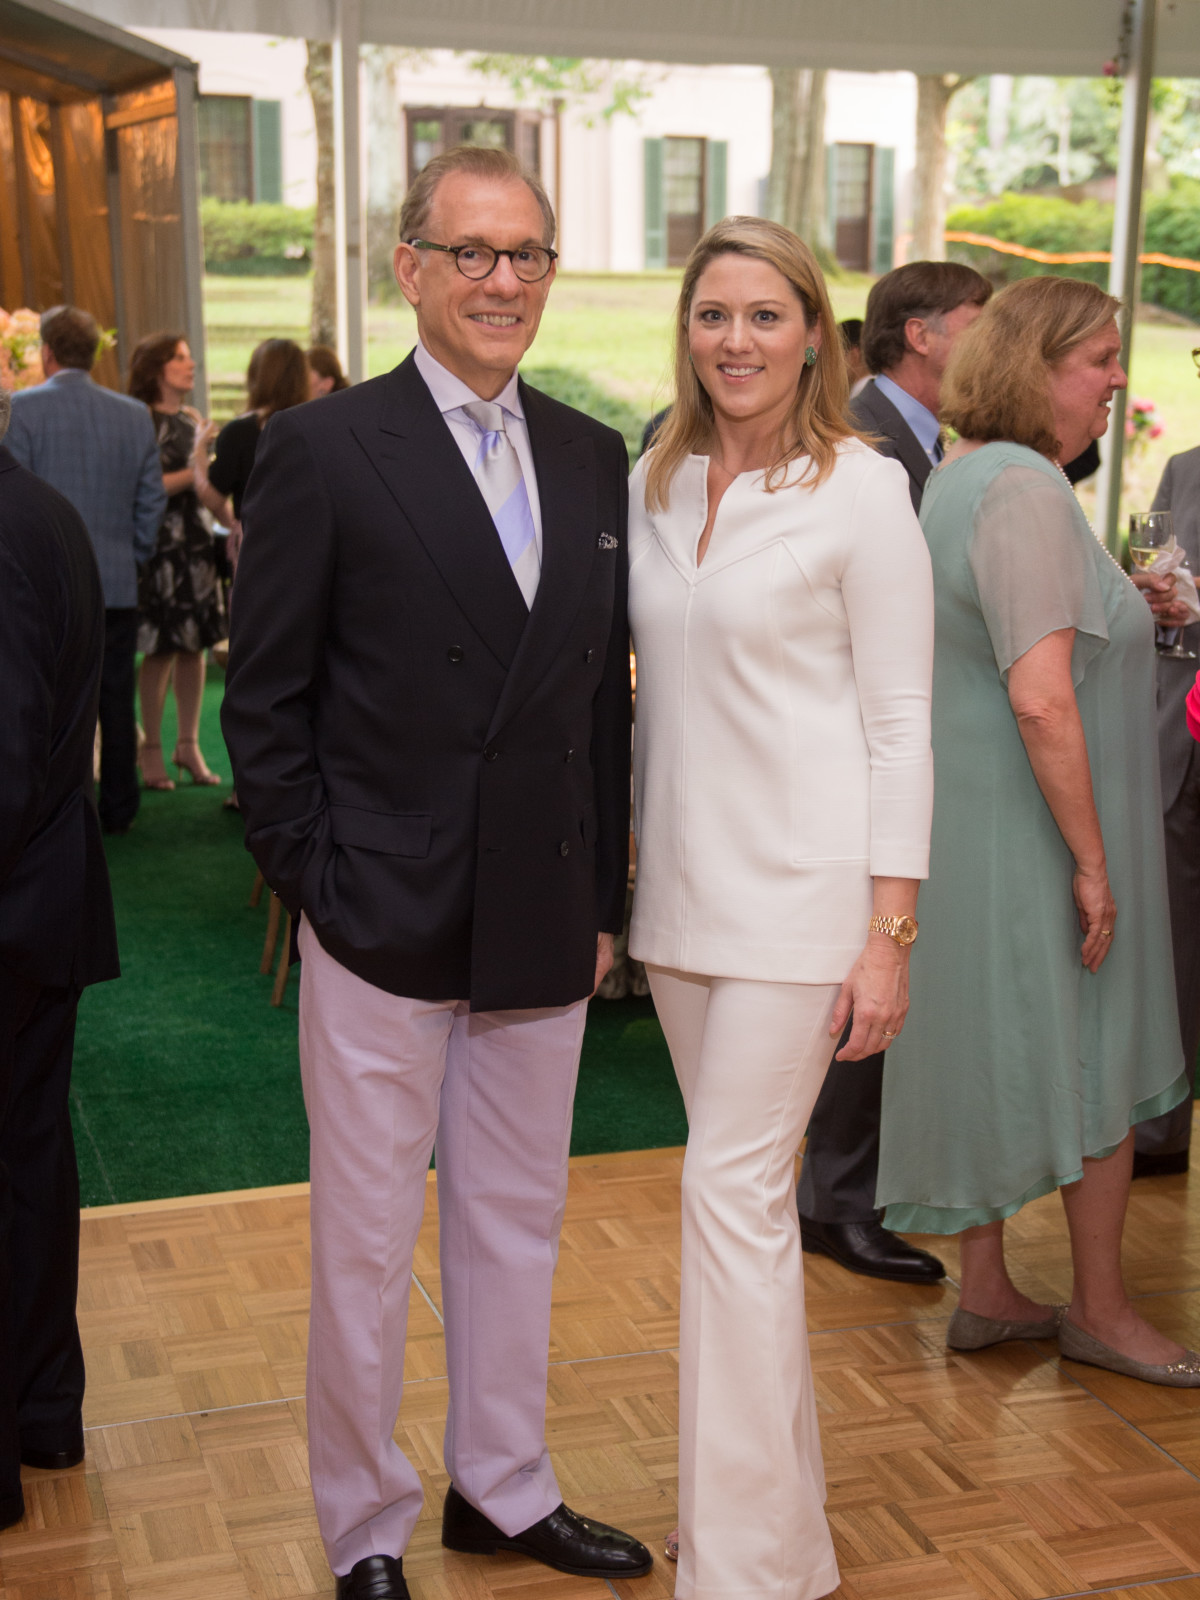 Gary Tinterow, Amy Purvis at Bayou Bend Garden Party 2017